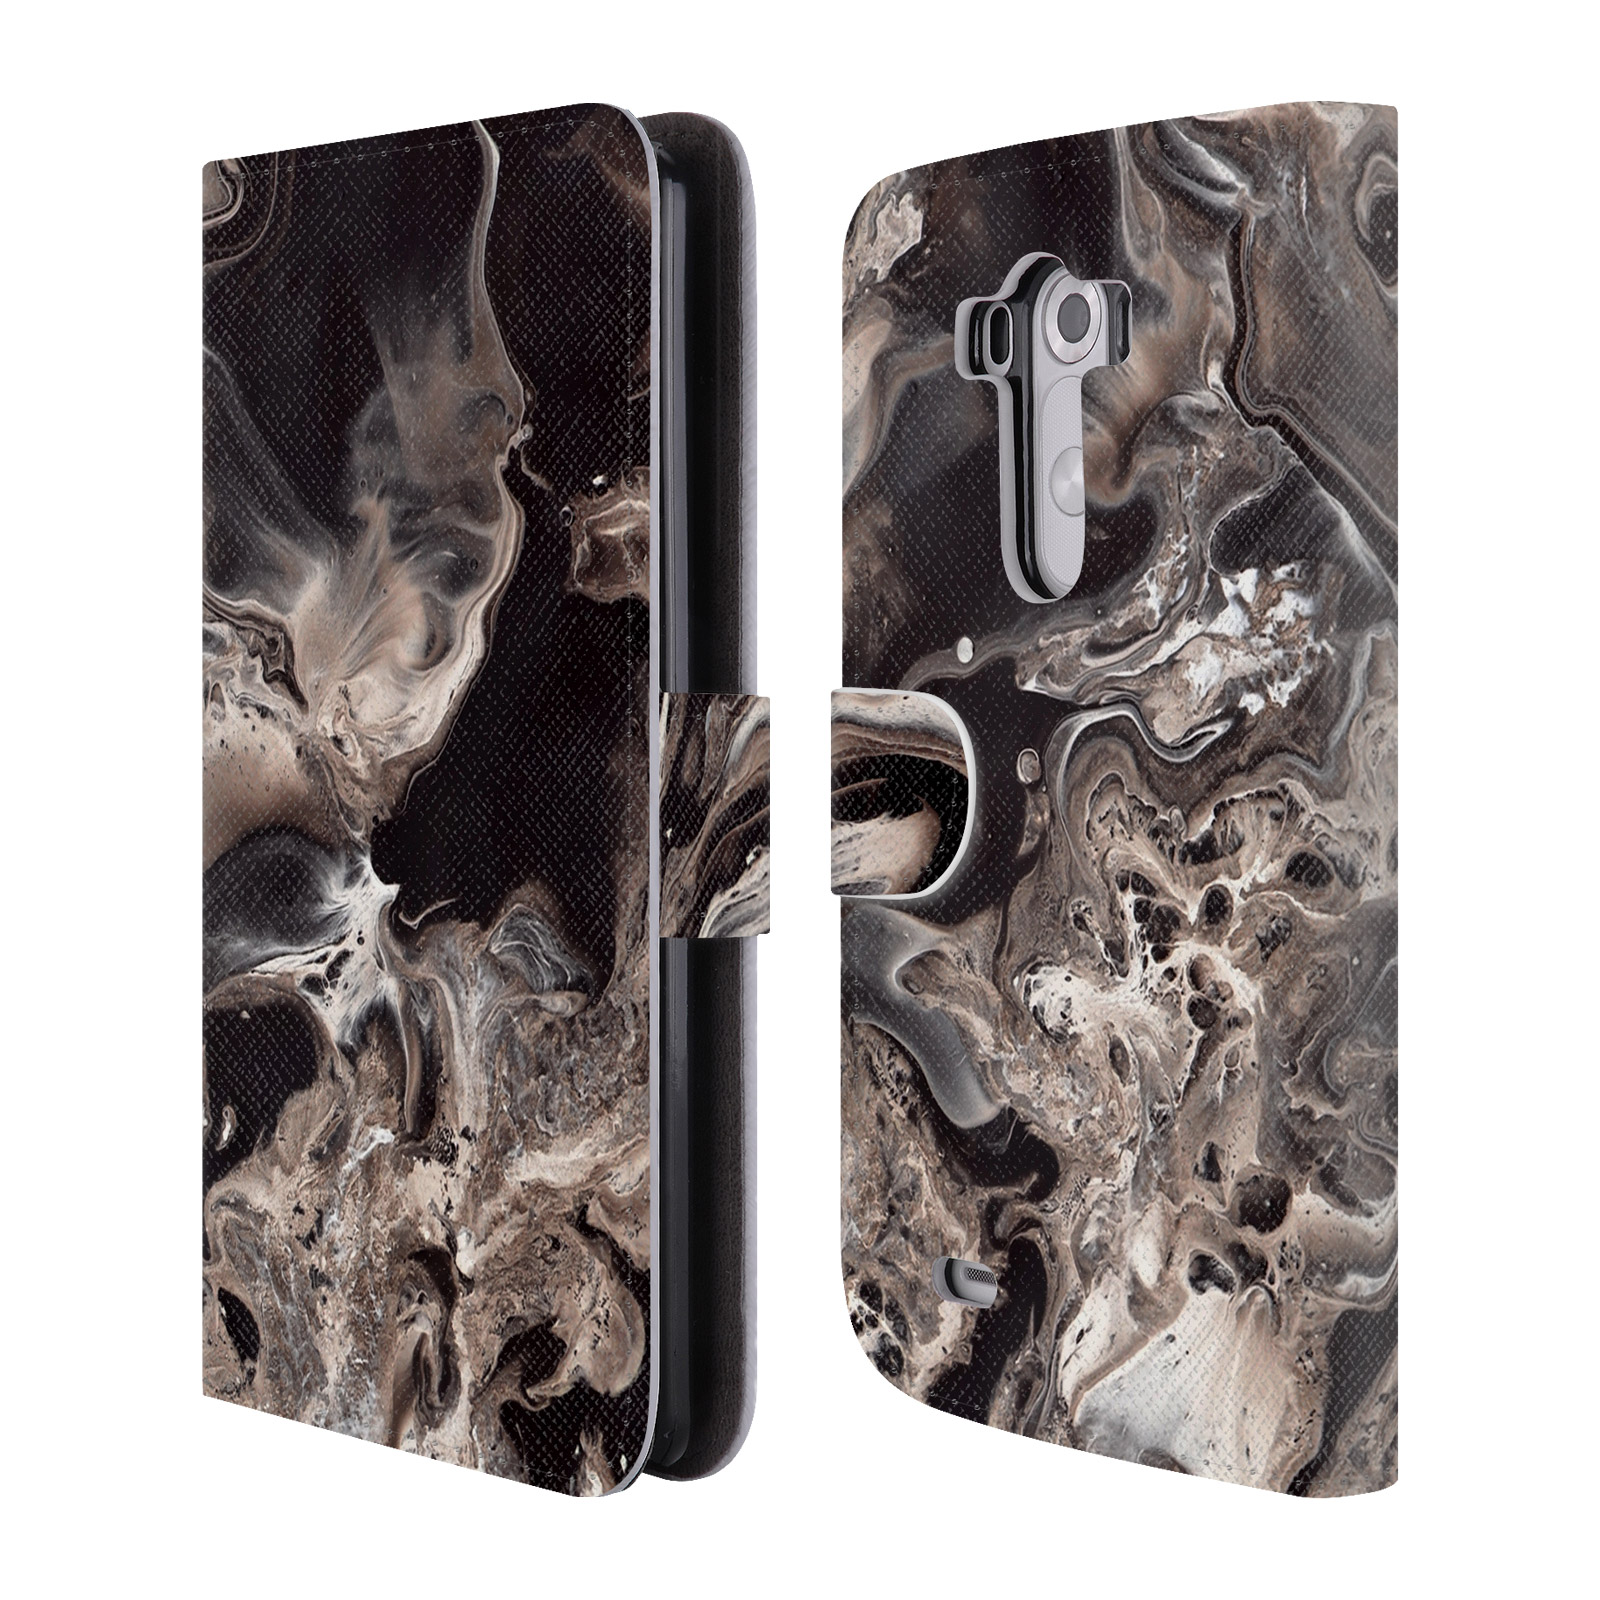 OFFICIAL-DJUNO-TOMSNI-ABSTRACT-2-LEATHER-BOOK-WALLET-CASE-COVER-FOR-LG-PHONES-1